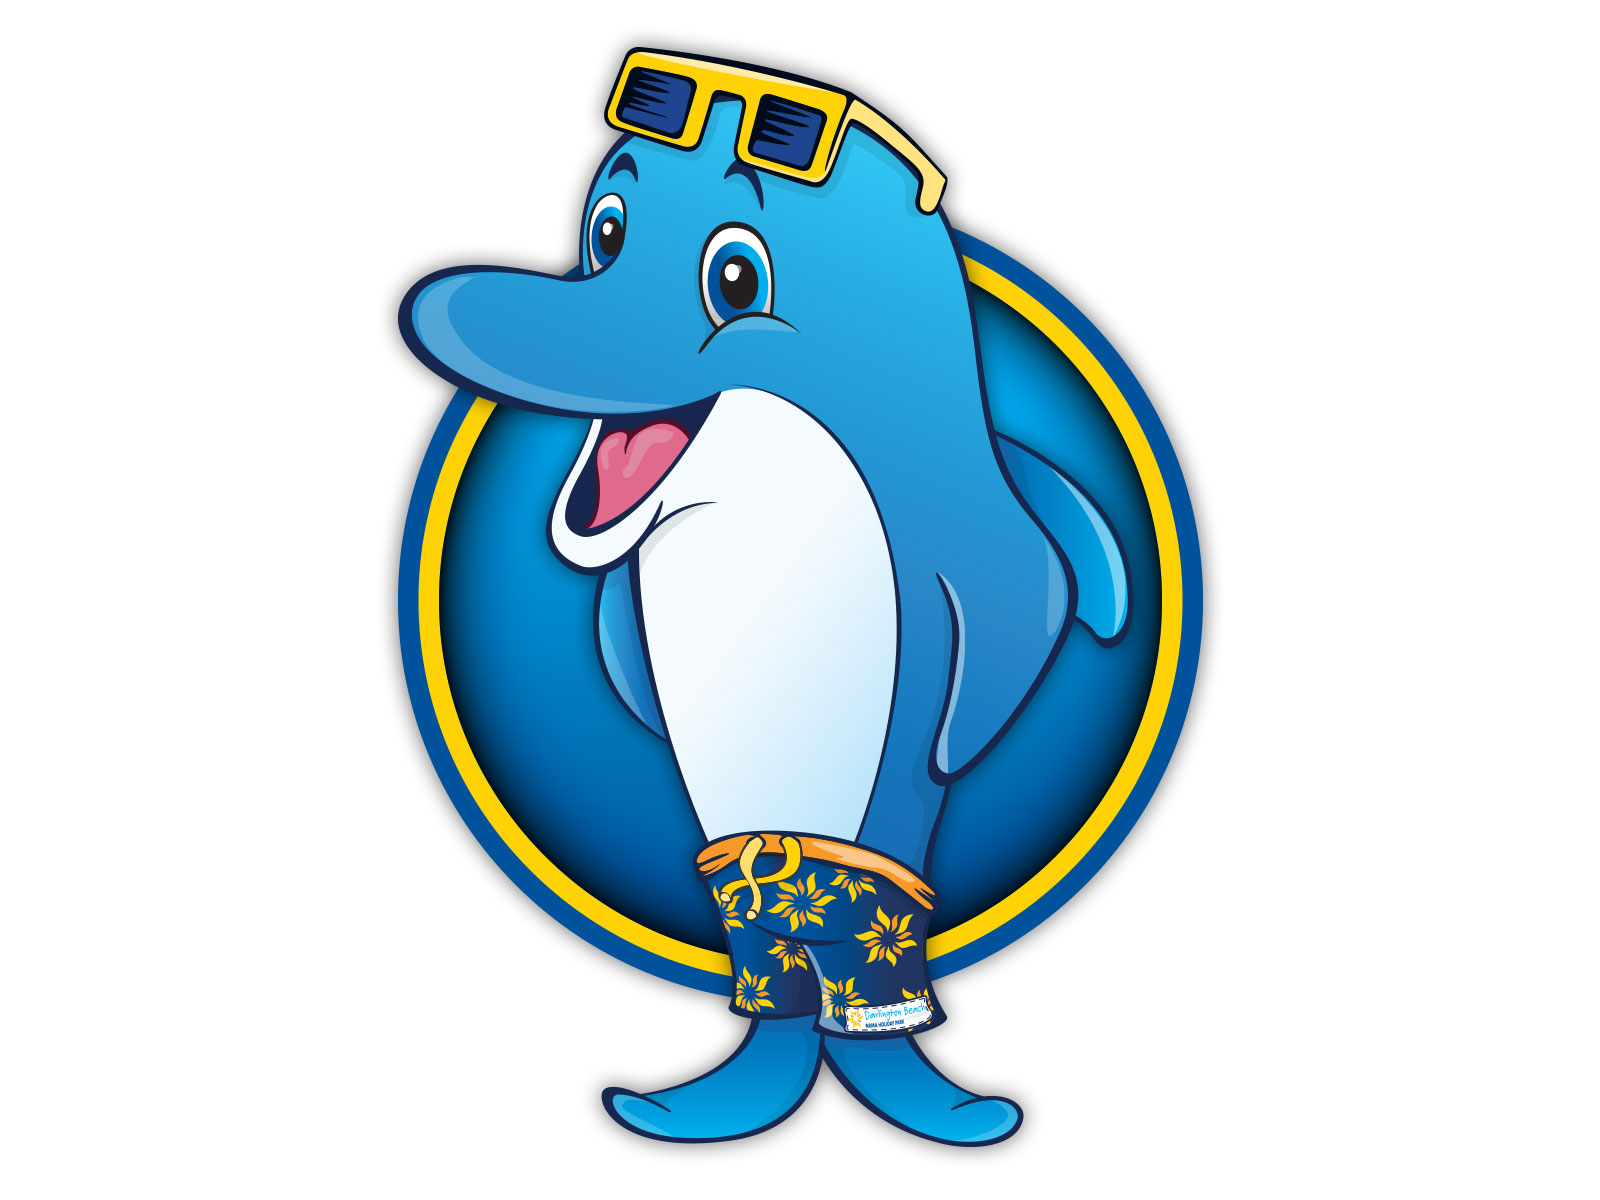 Colourful cartoon style dolphin character illustration for mascot